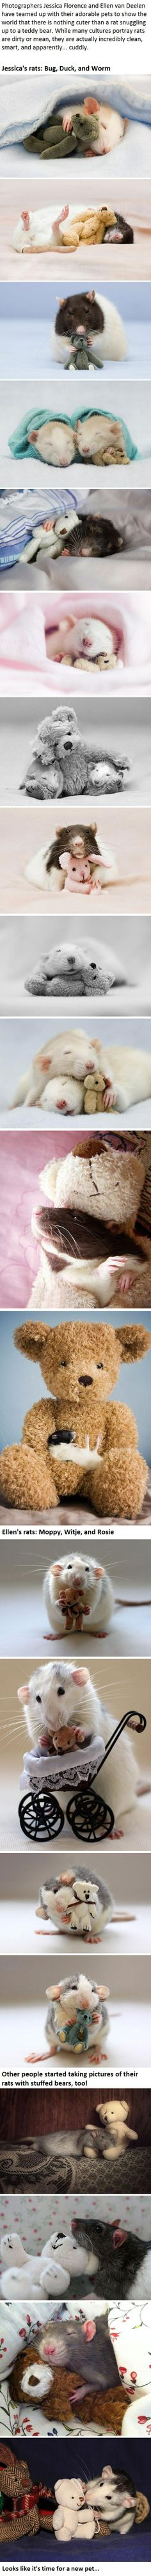 I can't believe I'm saying this, but these rats are adorable! I still don't think I would want one for a pet, though.